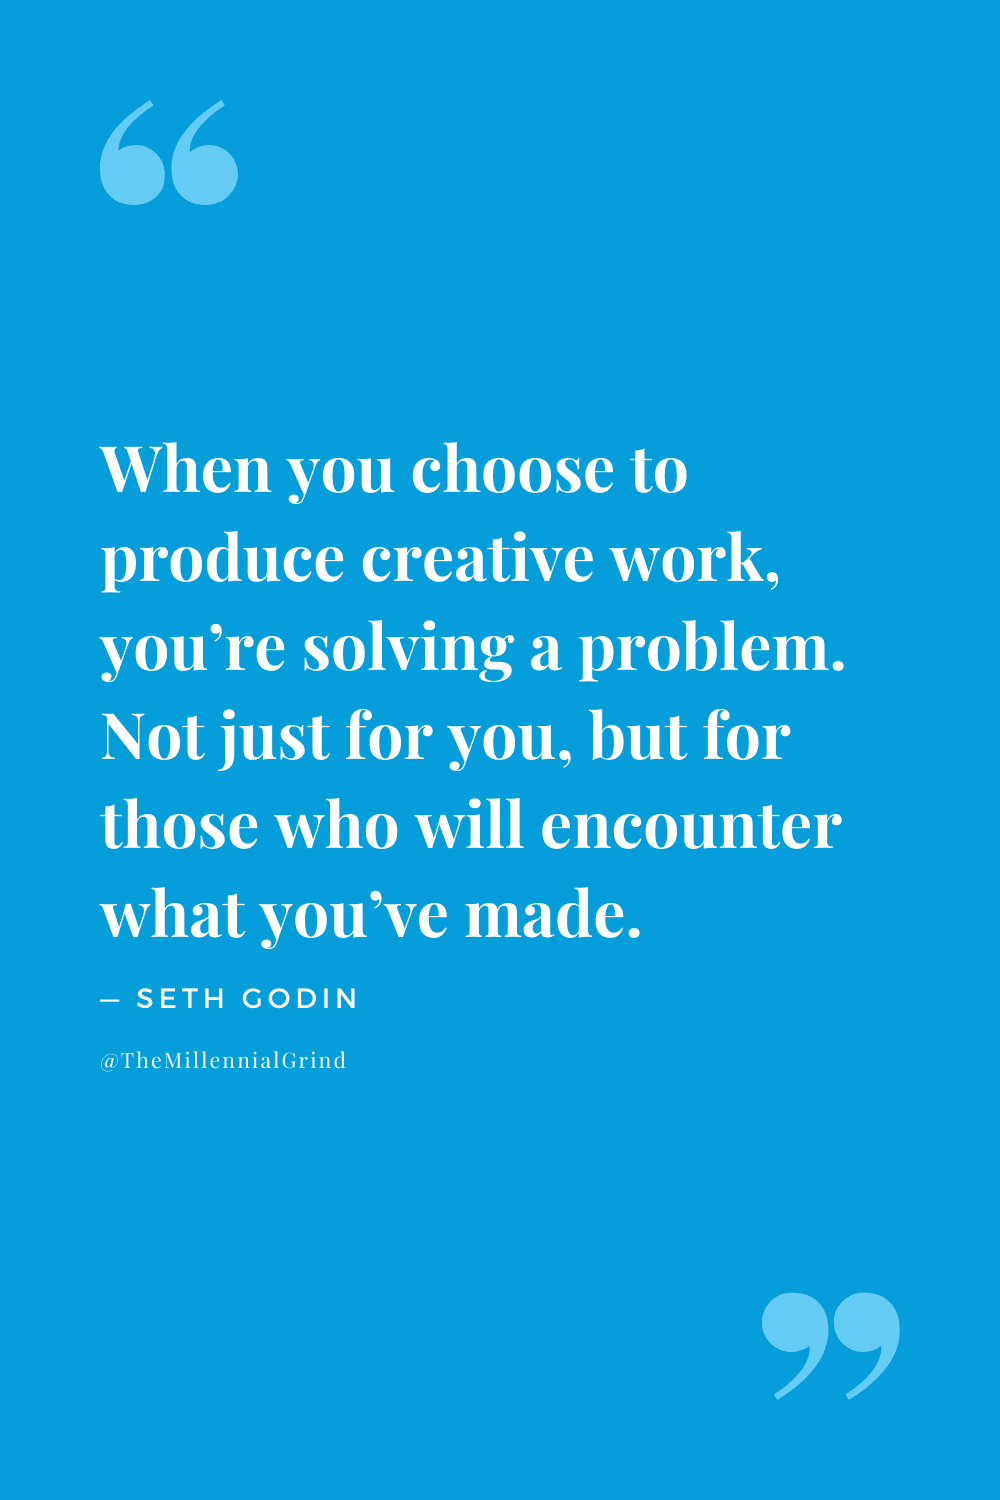 Quotes From The Practice by Seth Godin